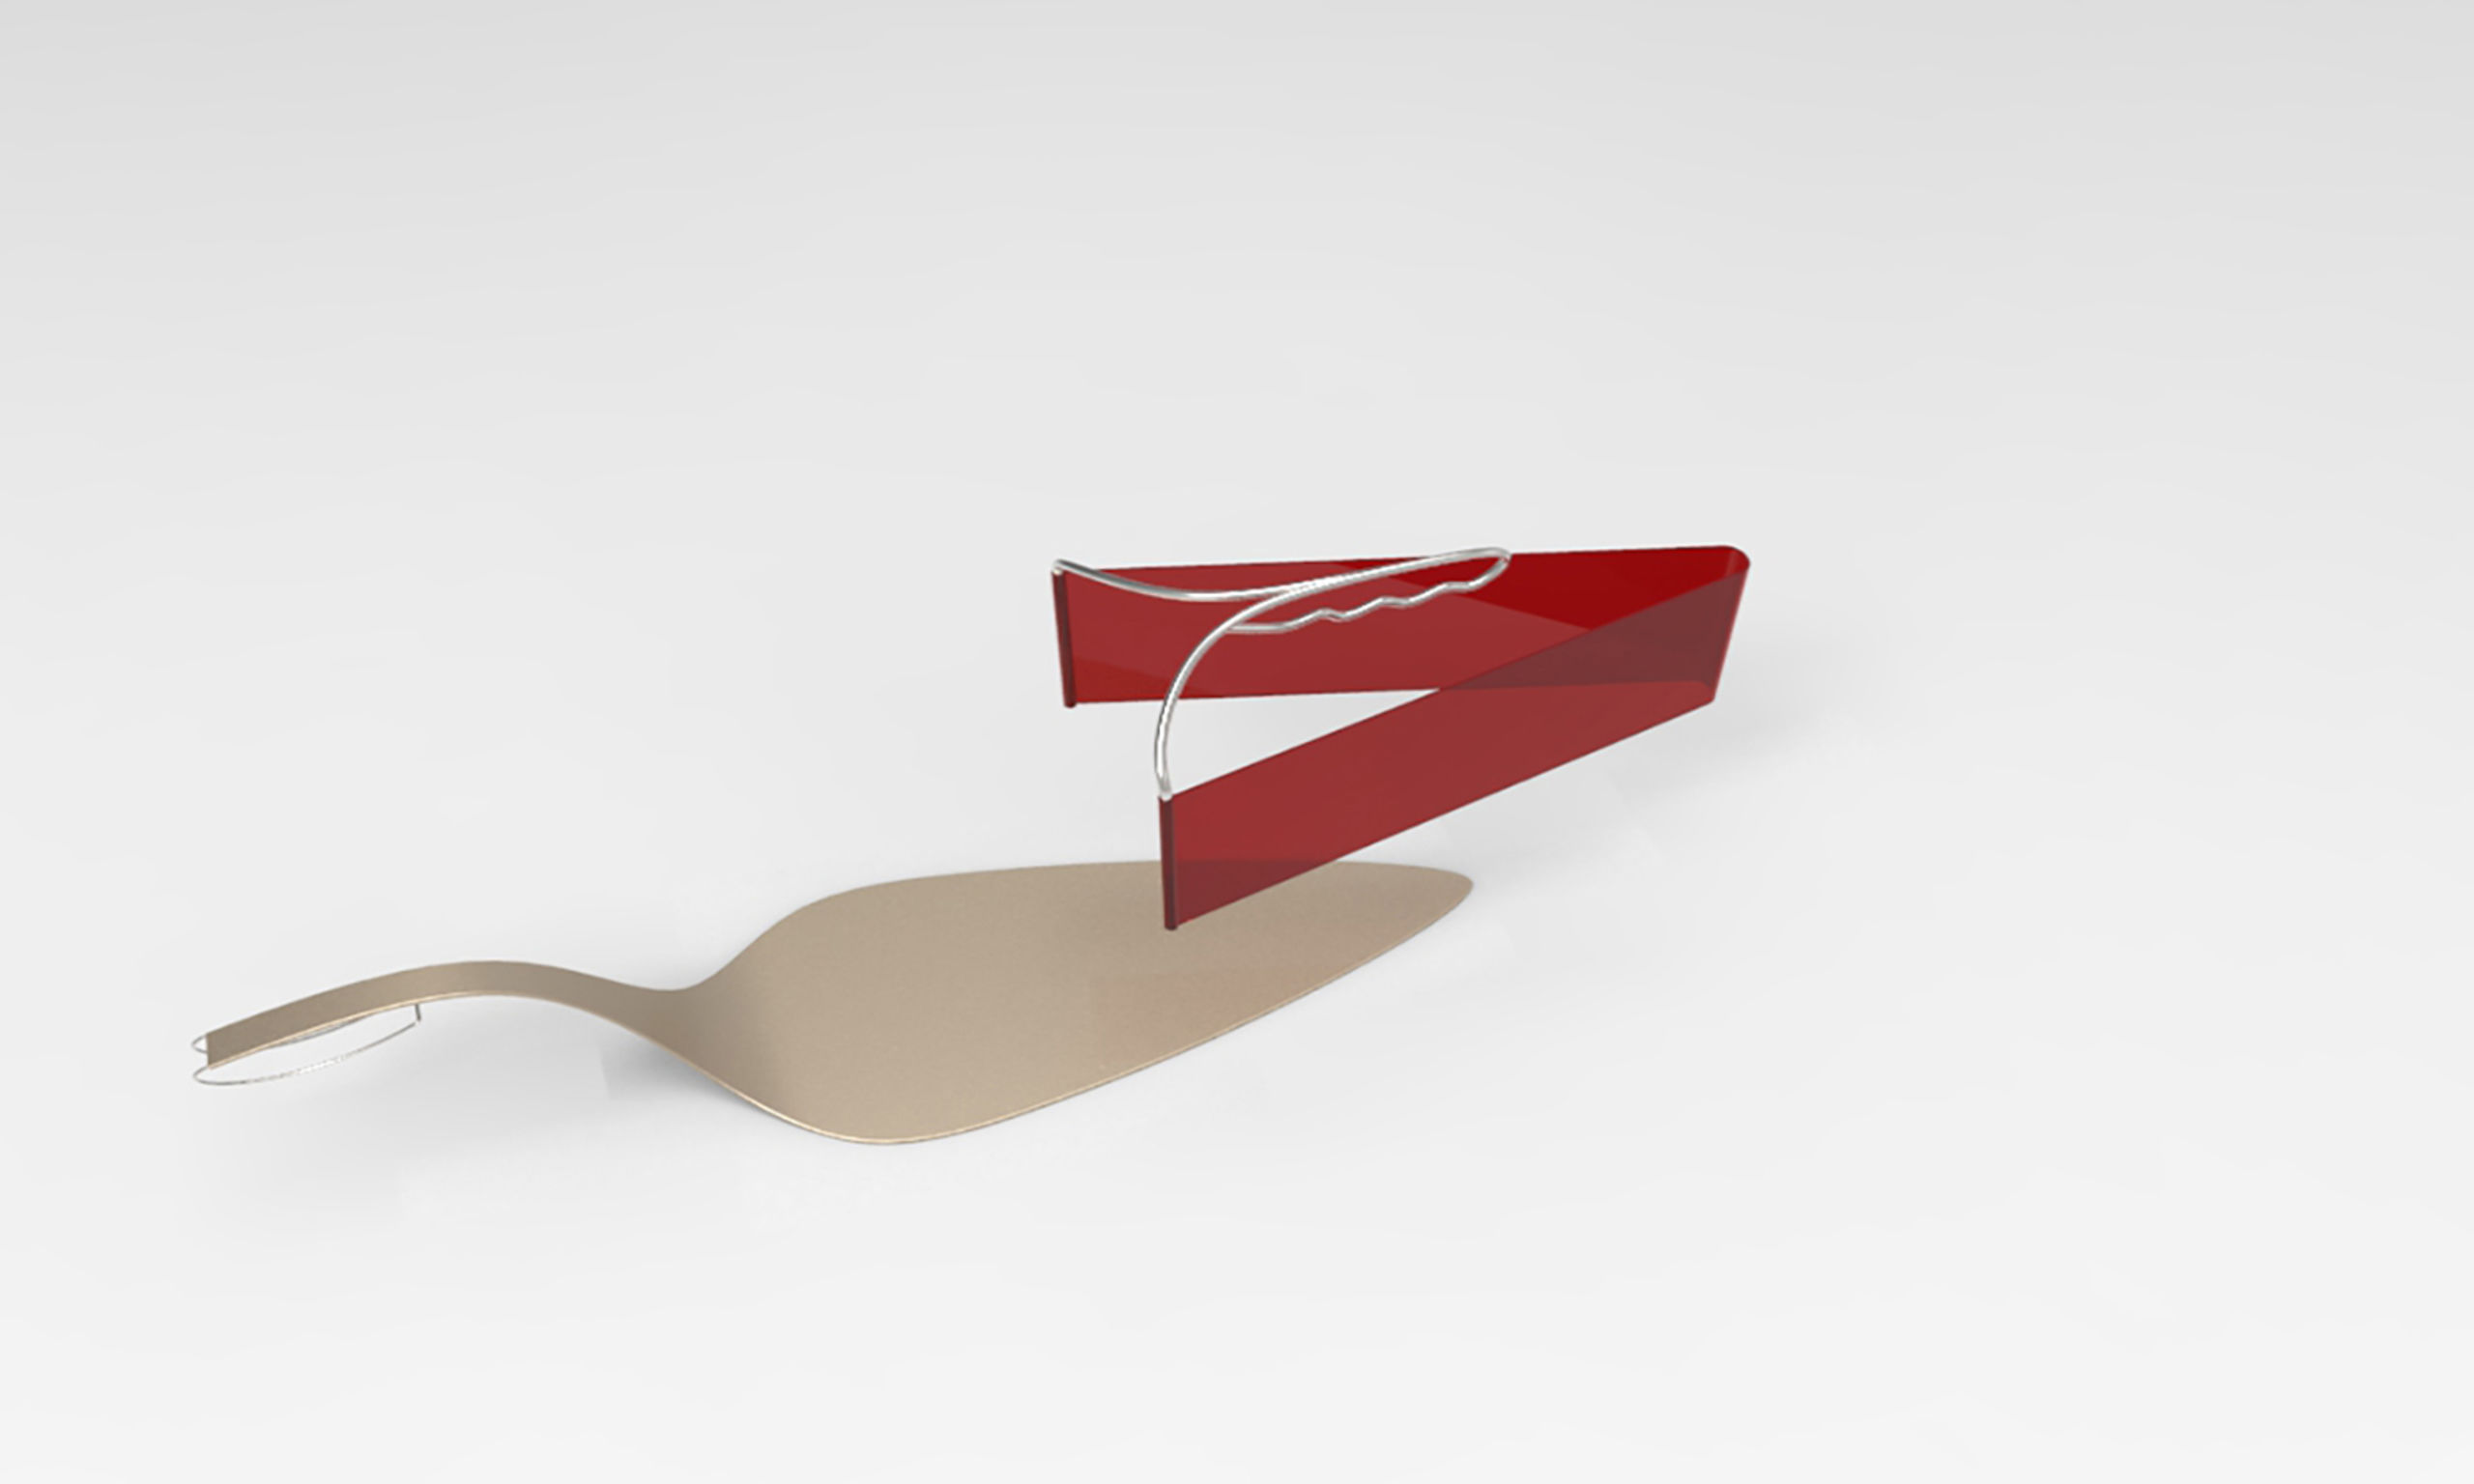 The Cake Cutter If World Design Guide